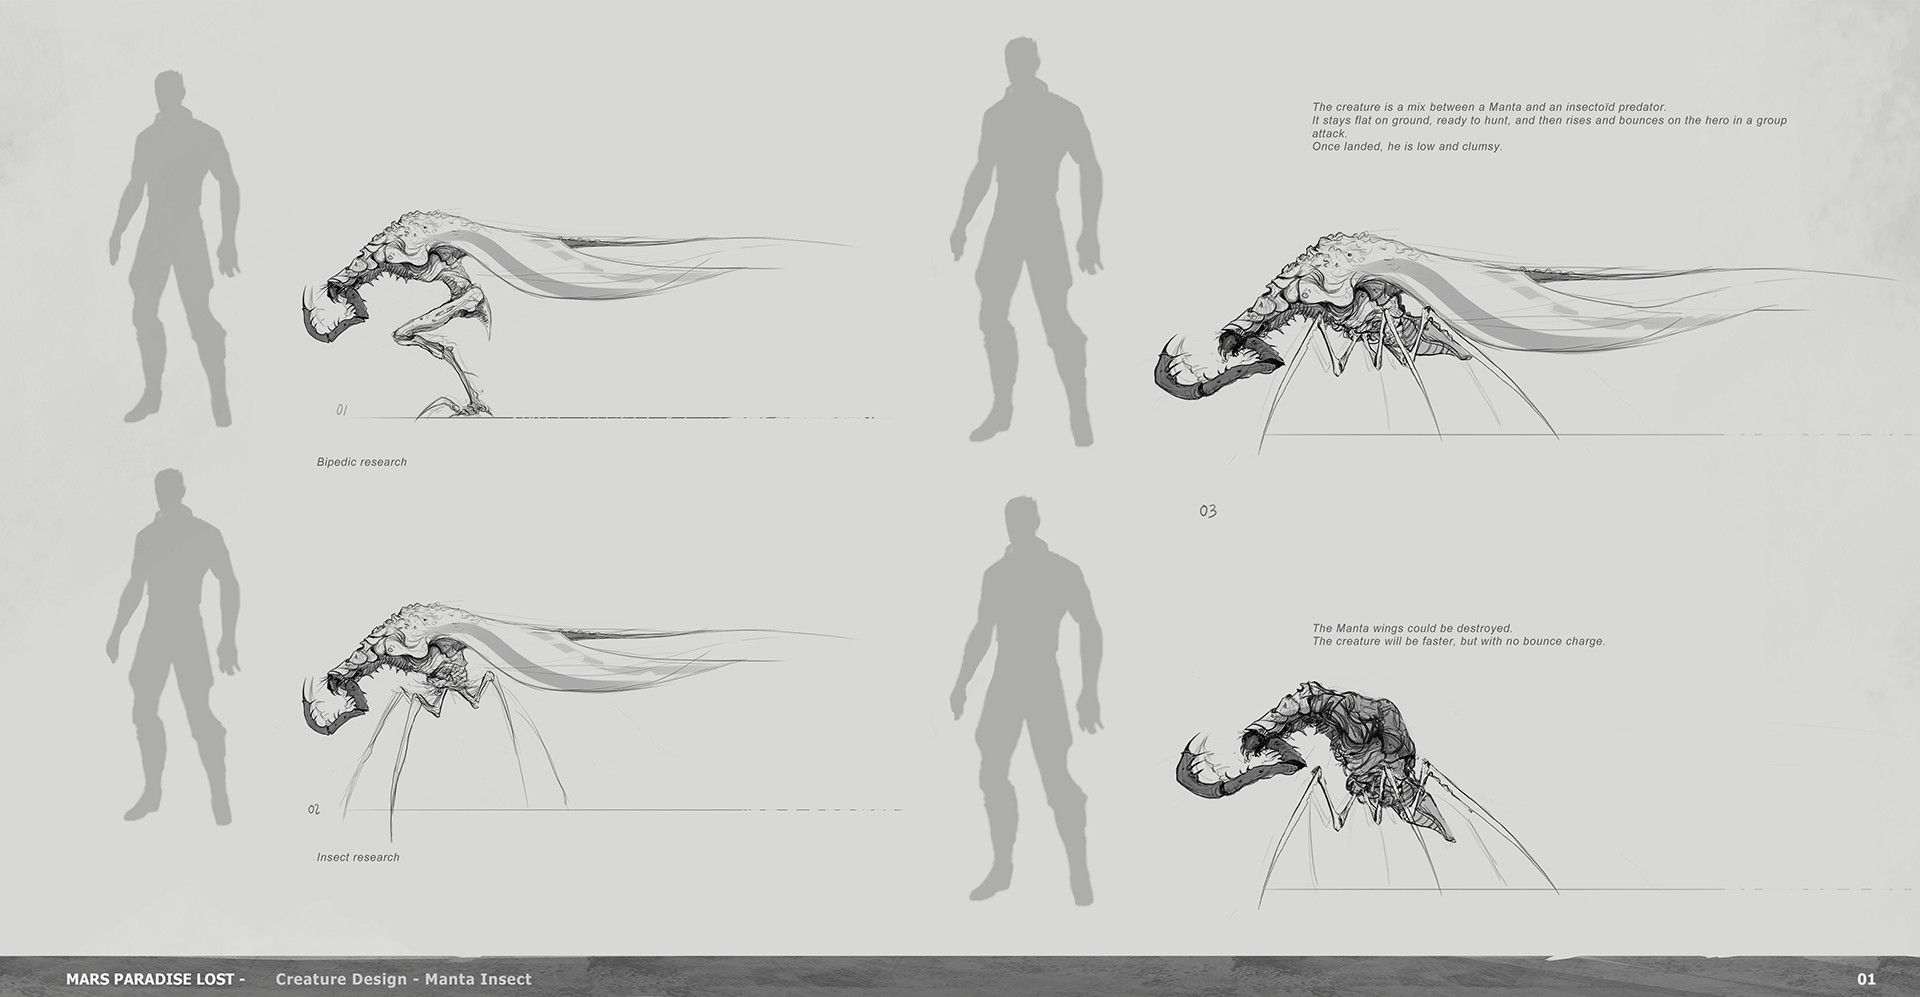 Alexandre chaudret mpl creature manta insect research01